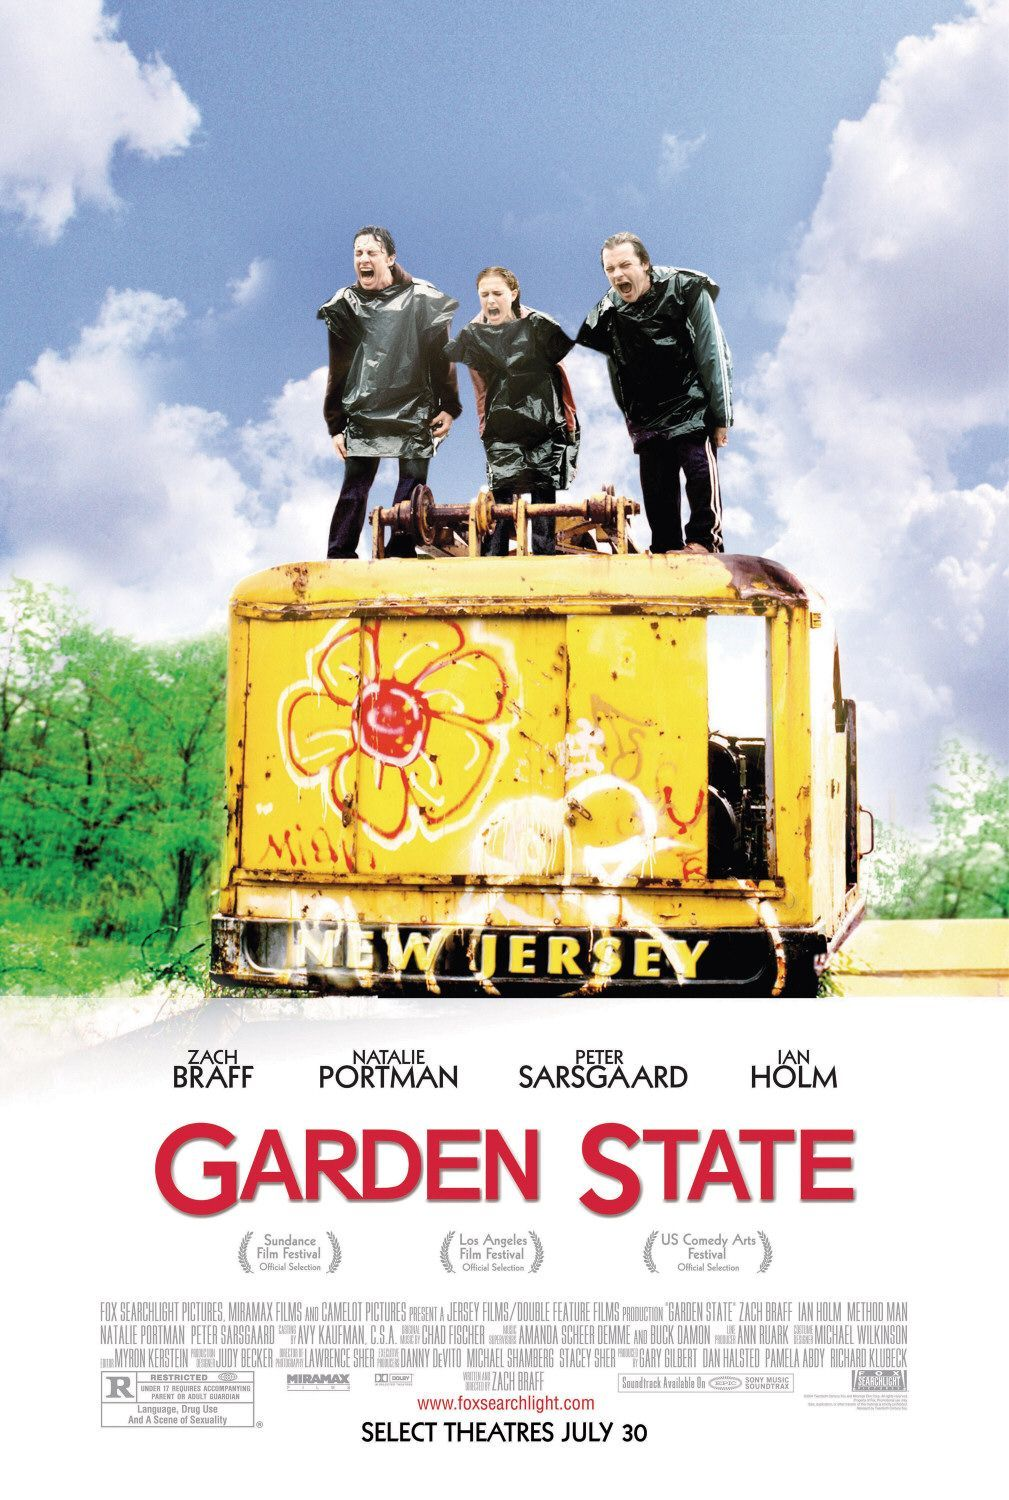 Garden State Jpg Jpeg Imagen 1009x1500 Pixels Escalado 39 Indie Movie Posters Good Movies Movies